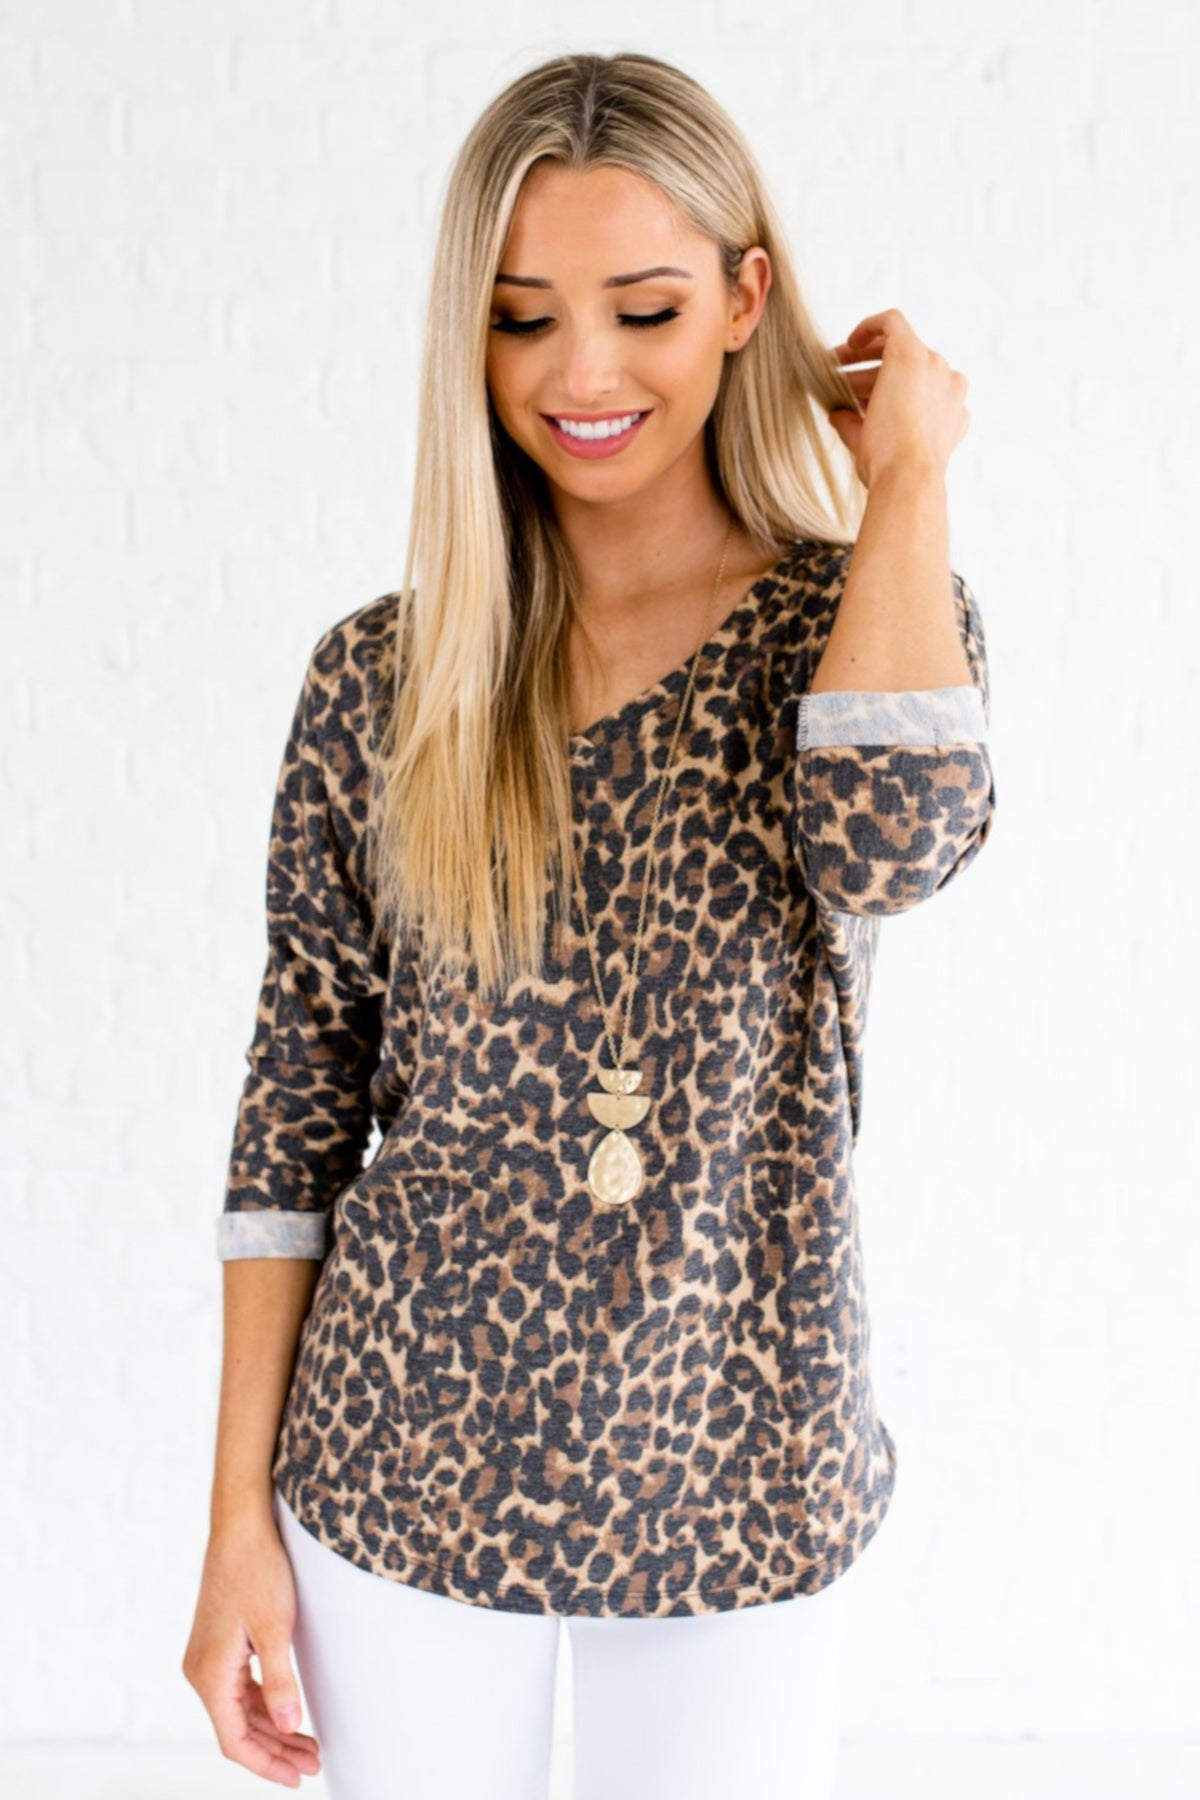 Faded Leopard Print Cute Boutique Tops Faux Cuffed Sleeves